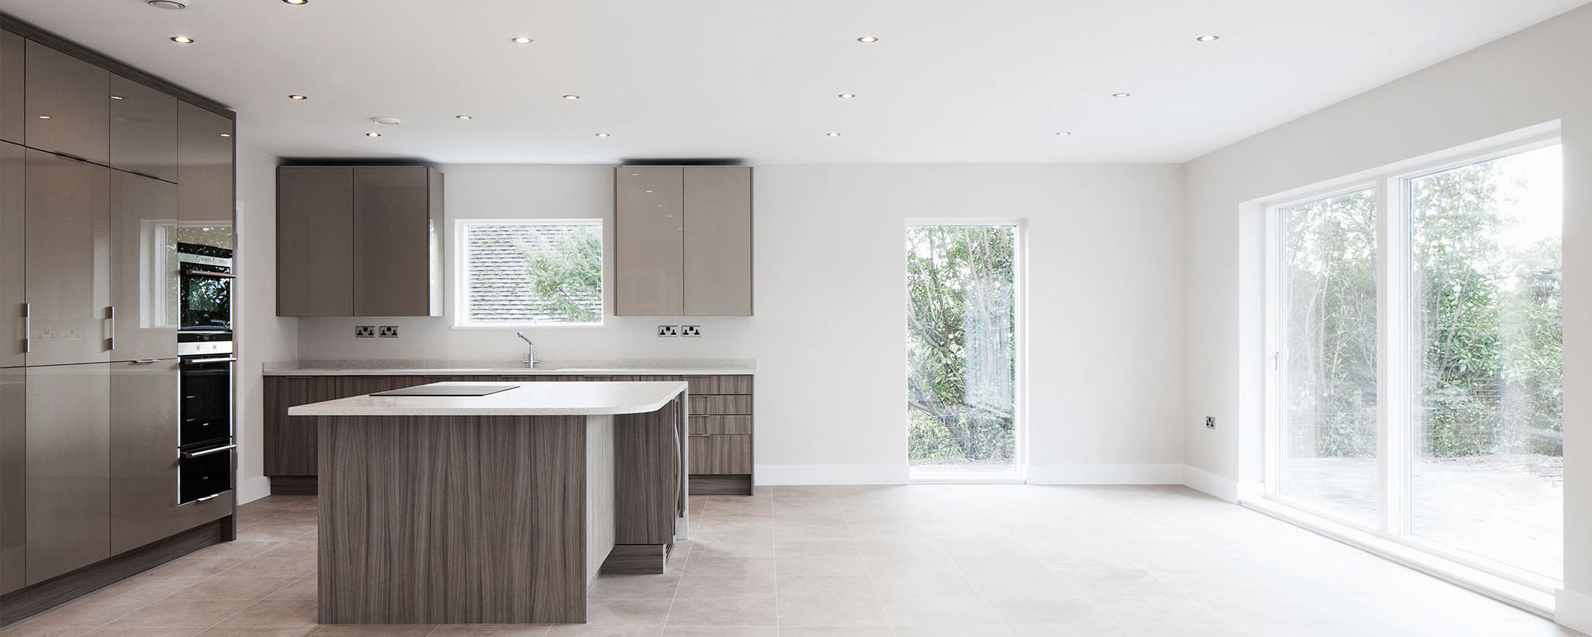 contemporary and minimalist kitchen with expansive sliding doors to the exterior